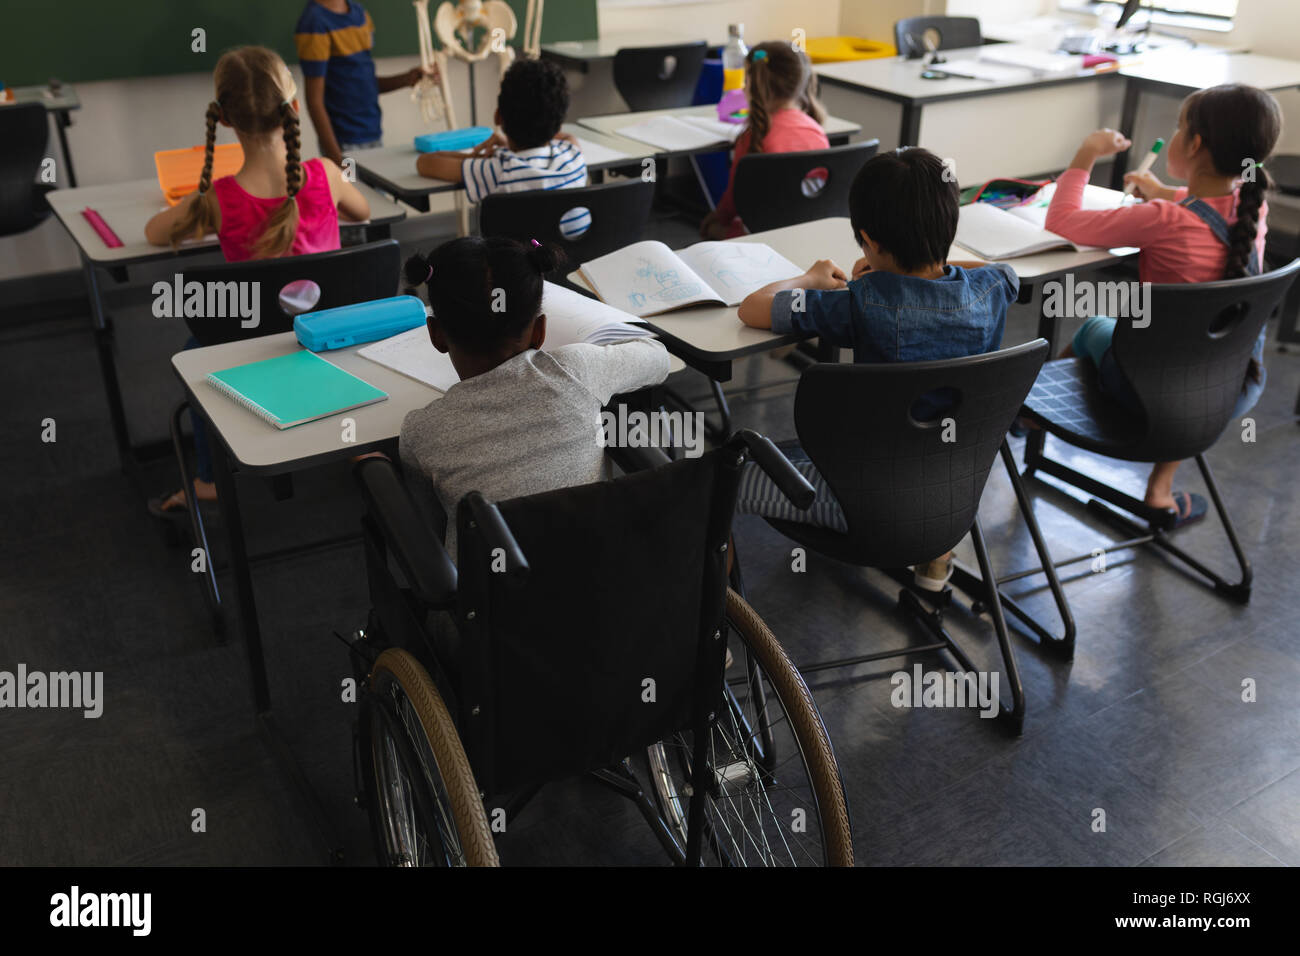 Rear view of disable schoolboy with classmate studying and sitting at desk in classroom of elementary school - Stock Image